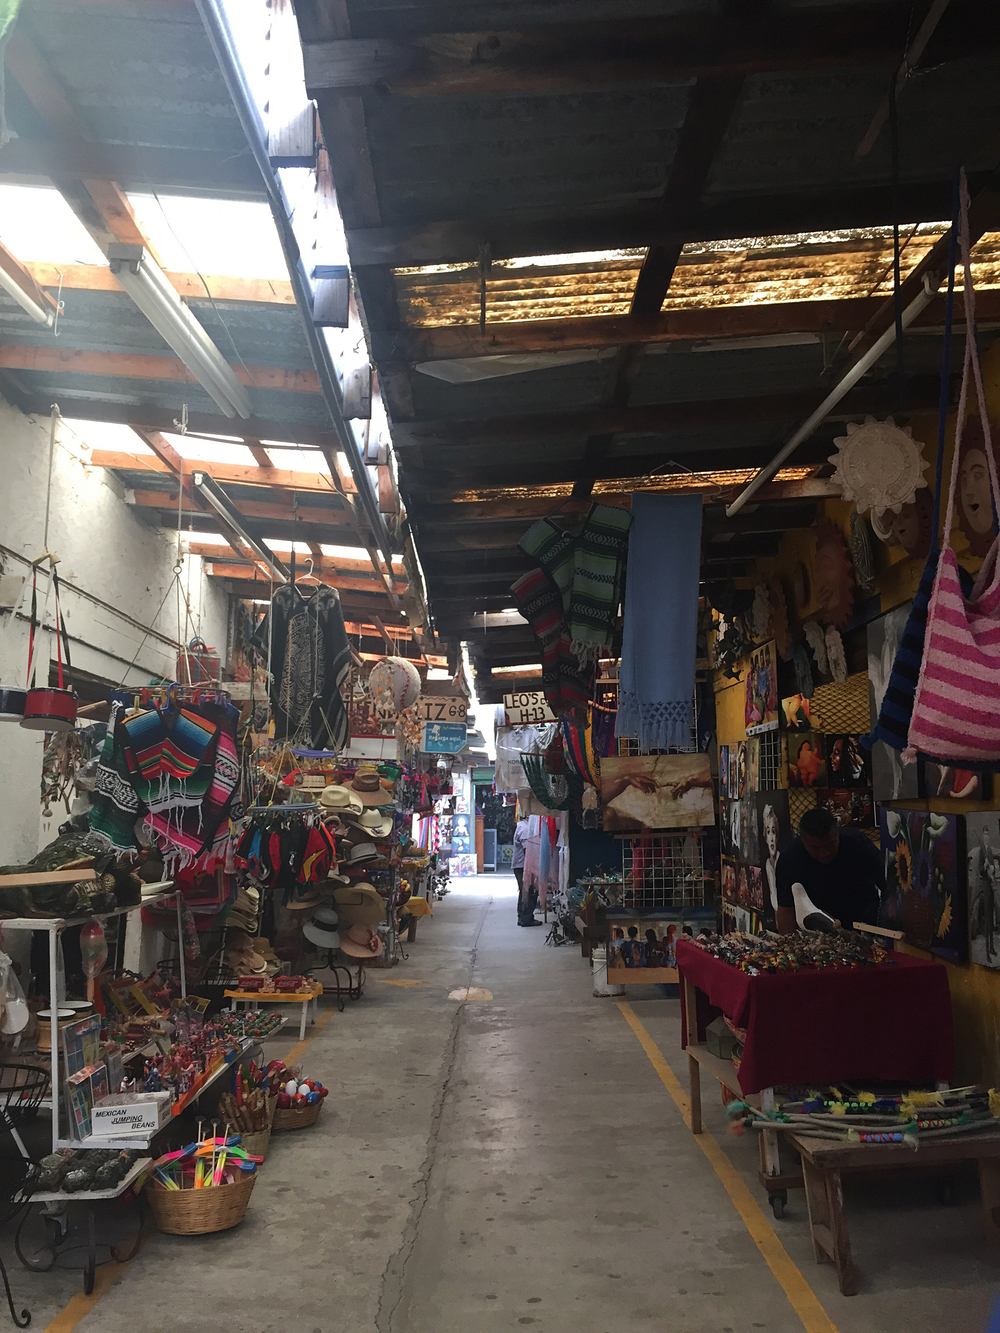 Shopping in Rosarito, Mexico